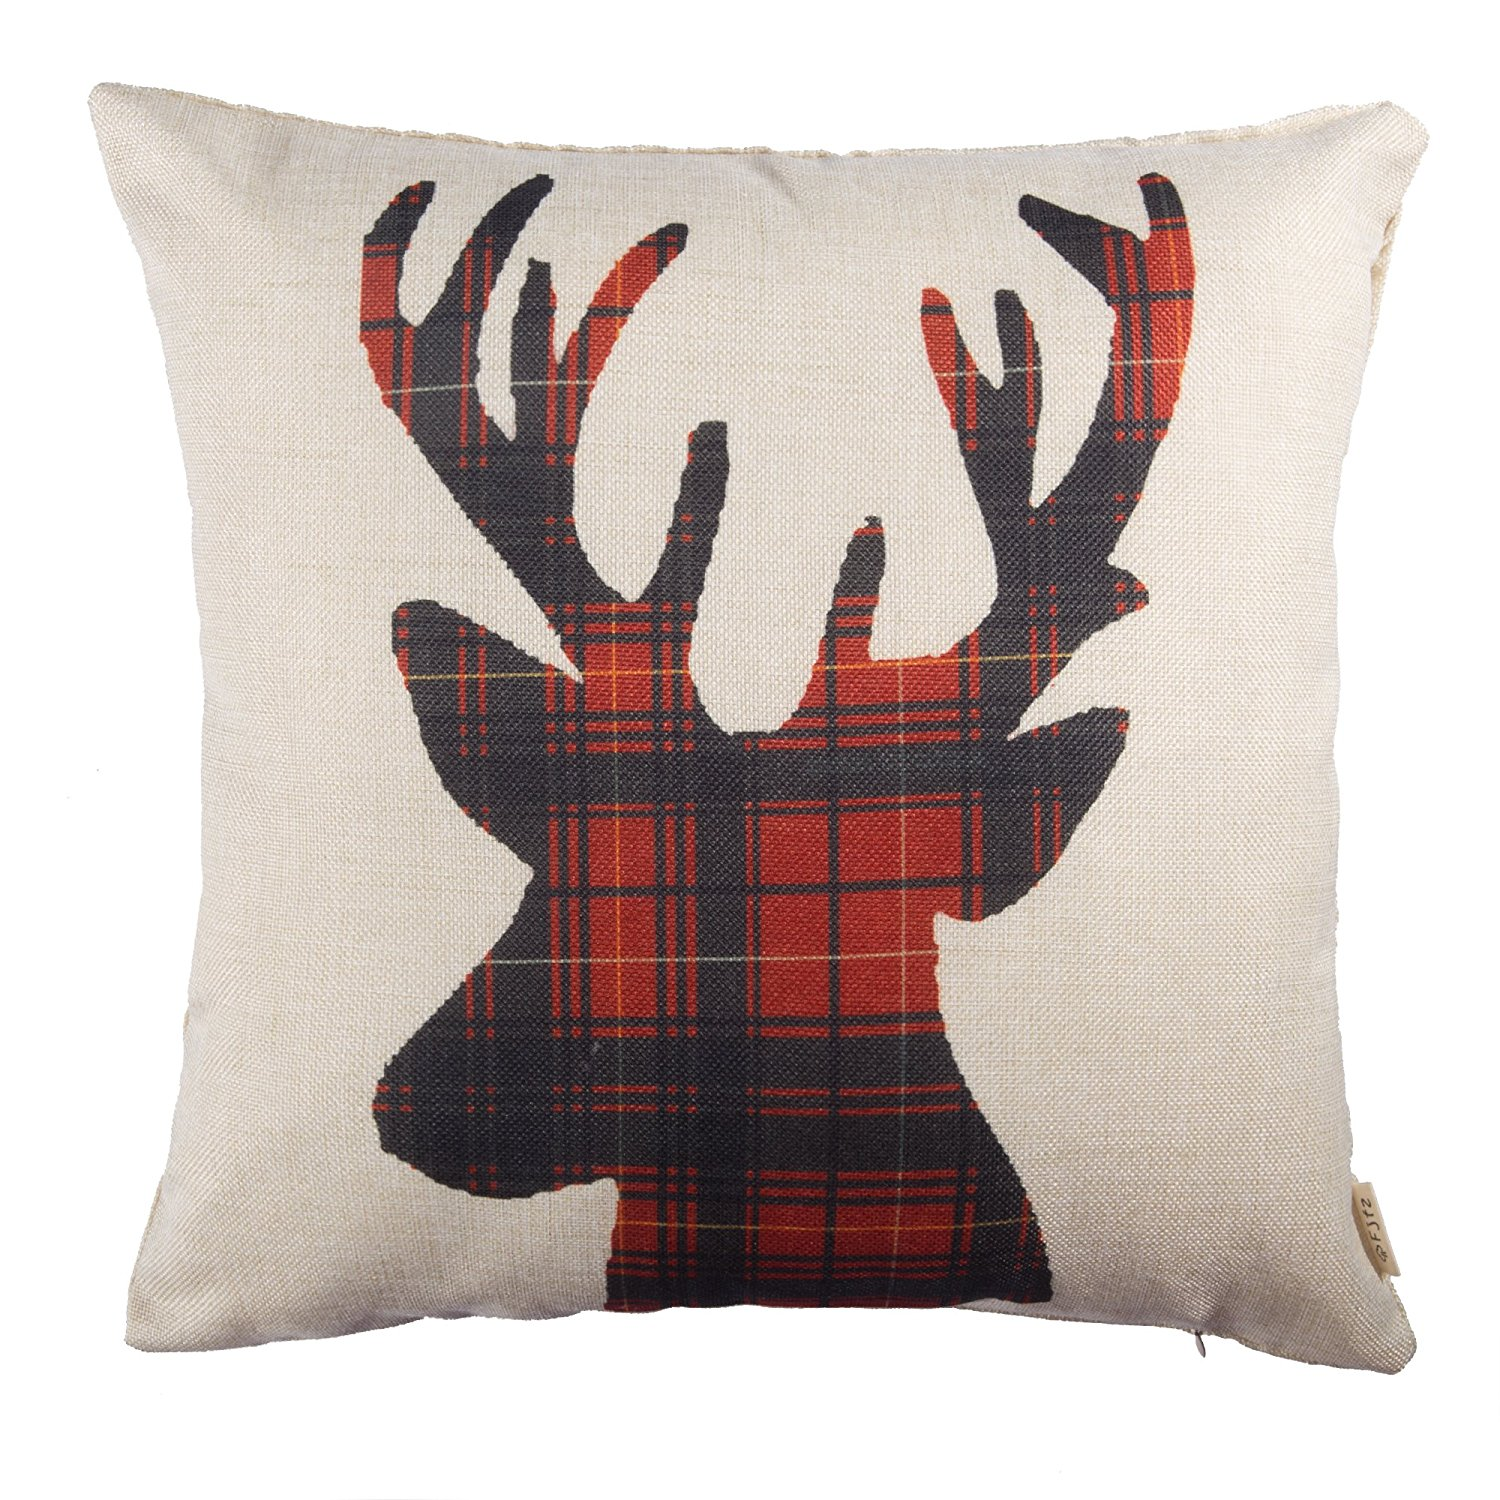 Plaid Reindeer \u2013 Another cute plaid reindeer pillow cover!